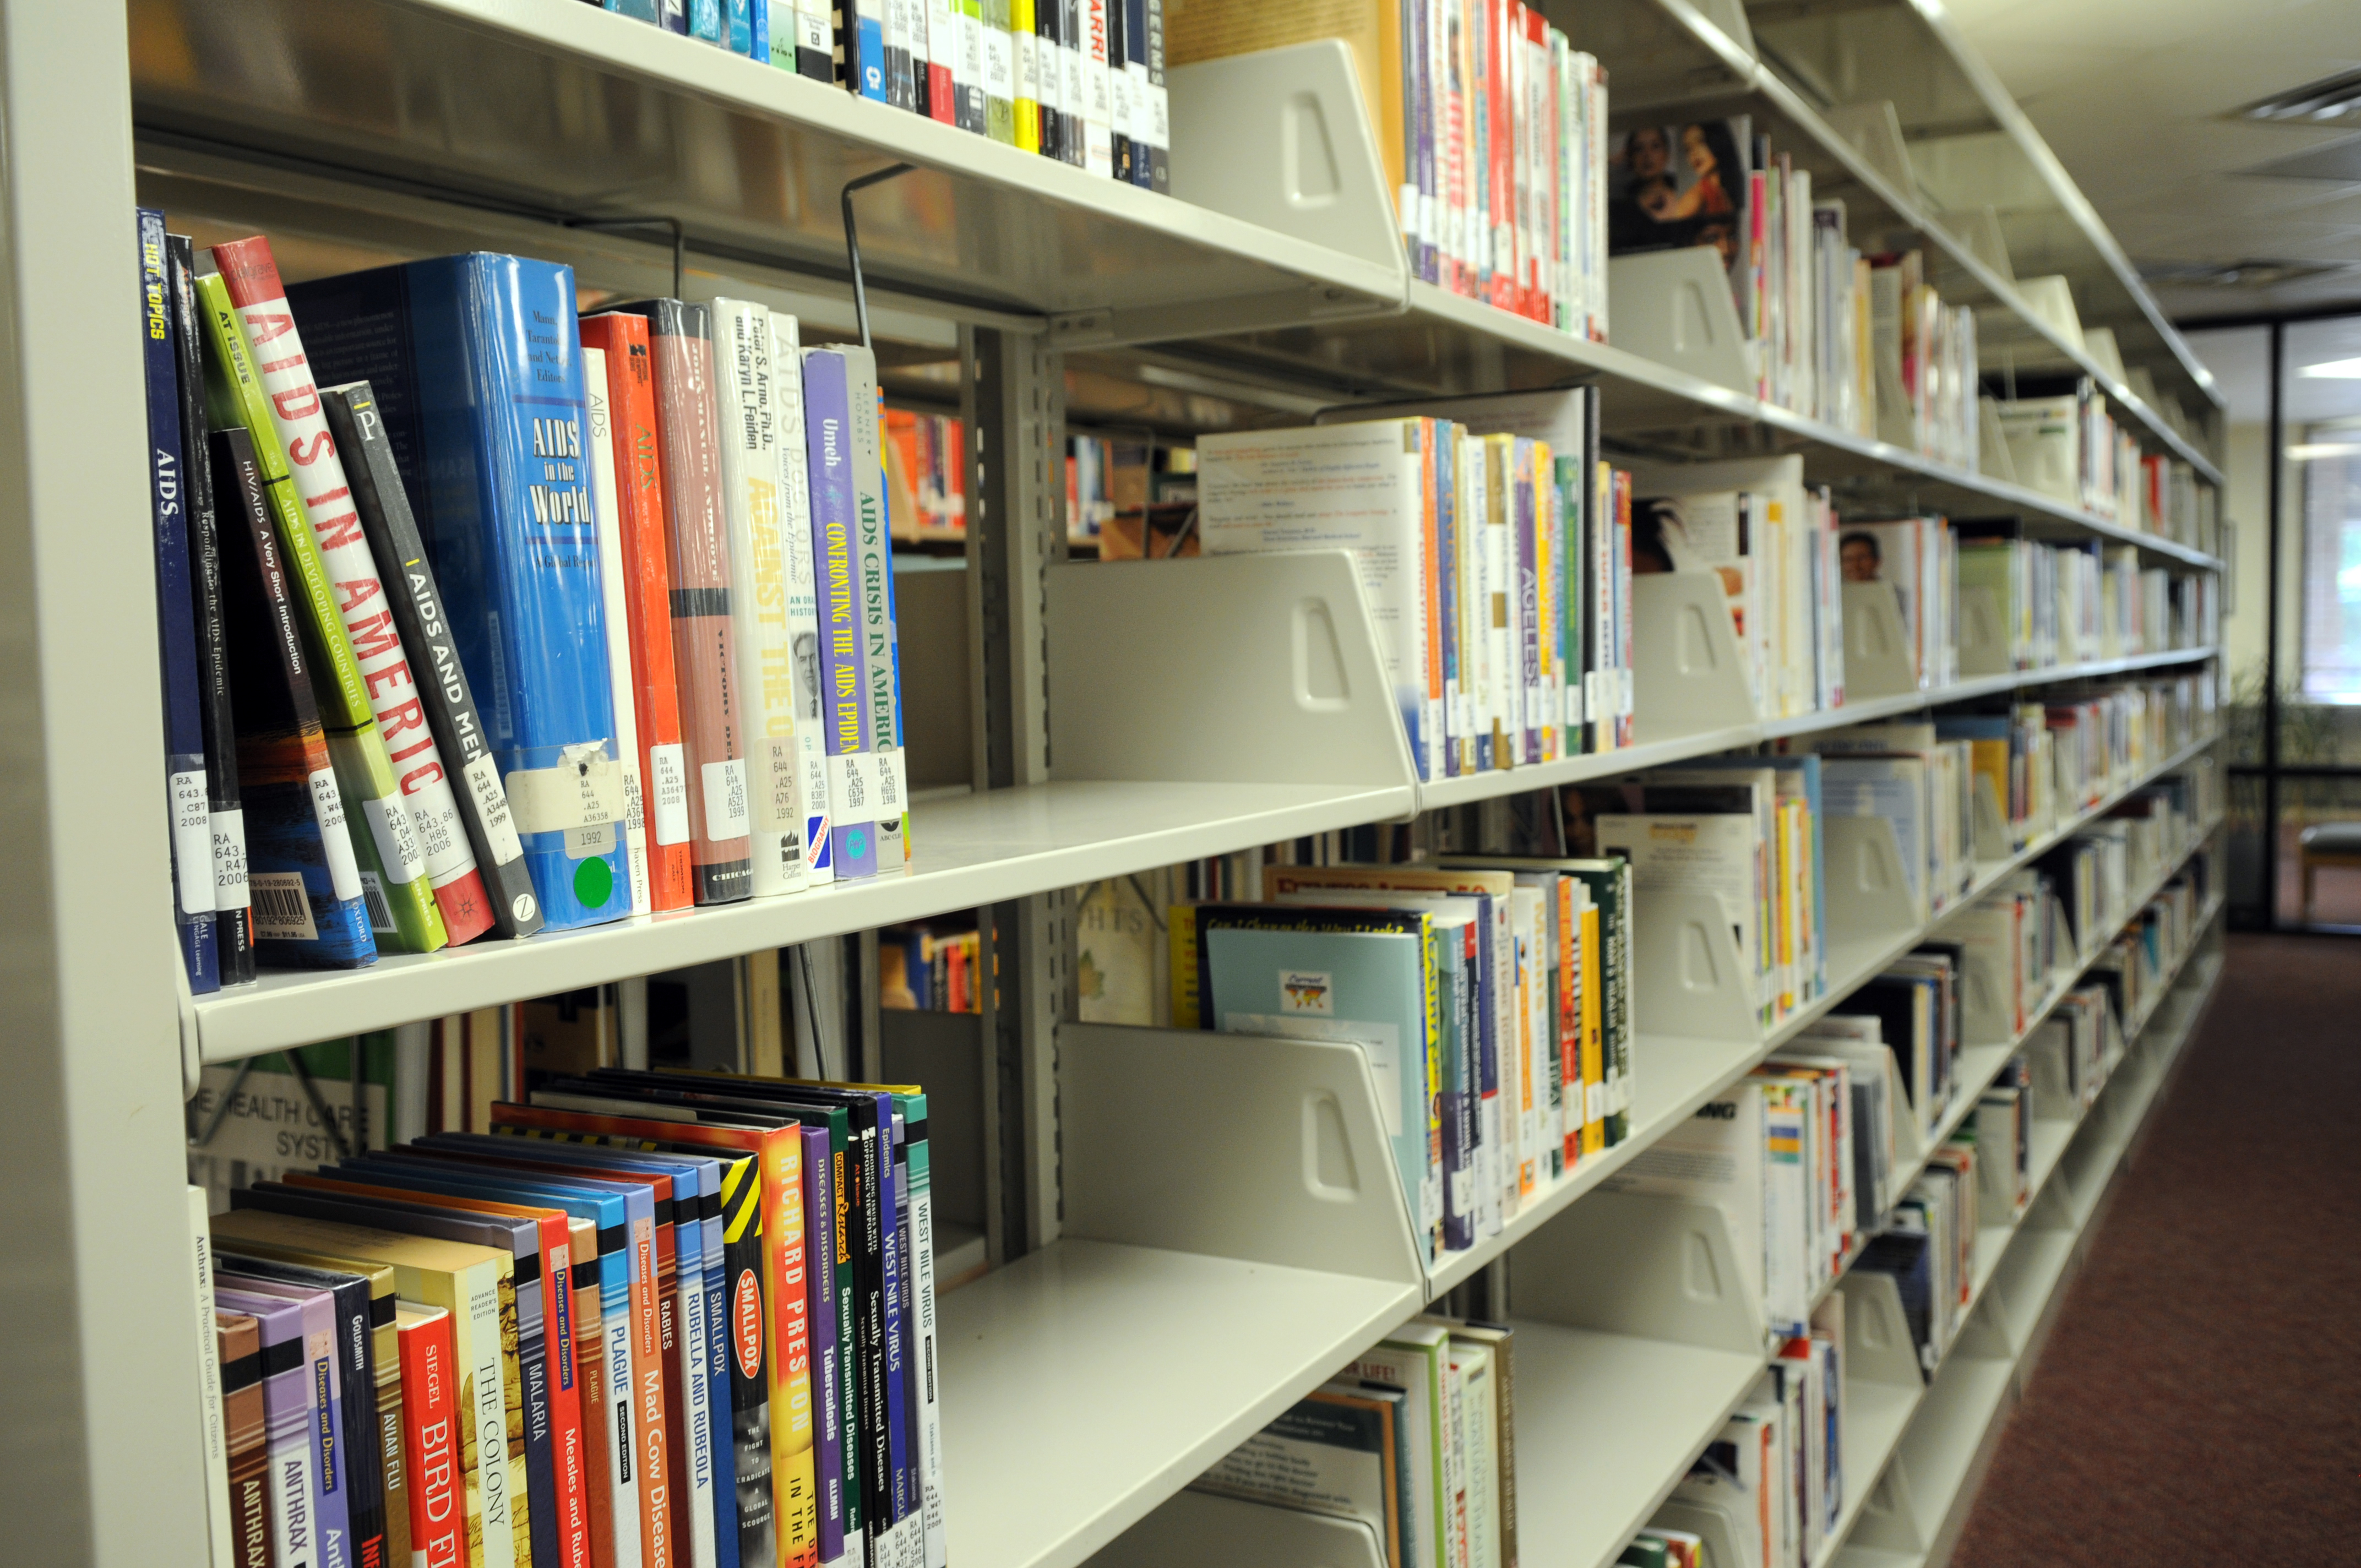 Chattahoochee Tech Libraries to Salute Veterans in November